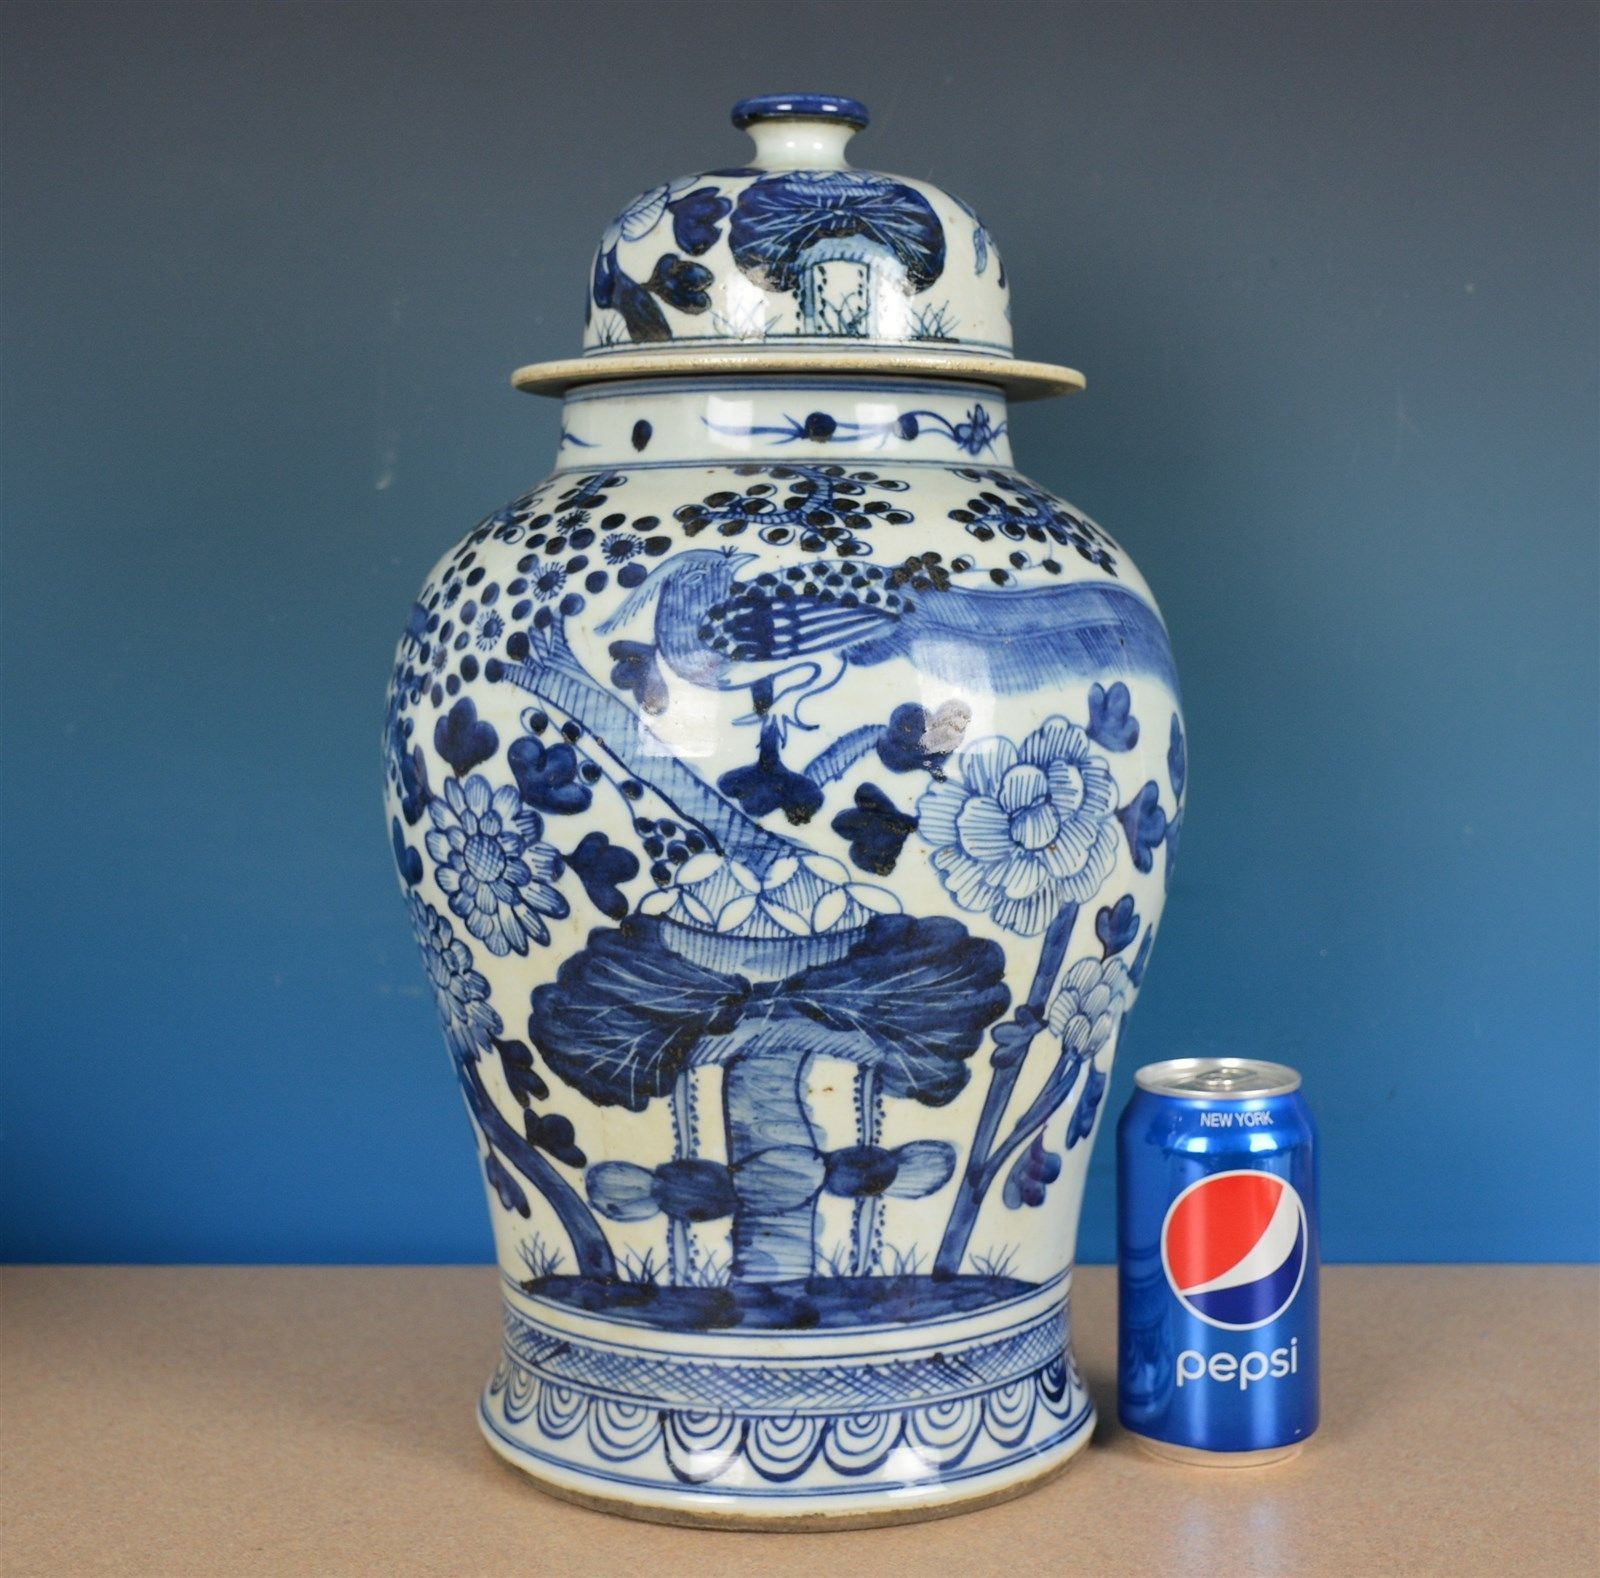 Chinese Lacquer Vase Of Magnificent Antique Chinese Blue and White Porcelain Vase Rare S7011 with Antique Magnificent Antique Chinese Blue and White Porcelain Vase Rare S7011 Please Retweet